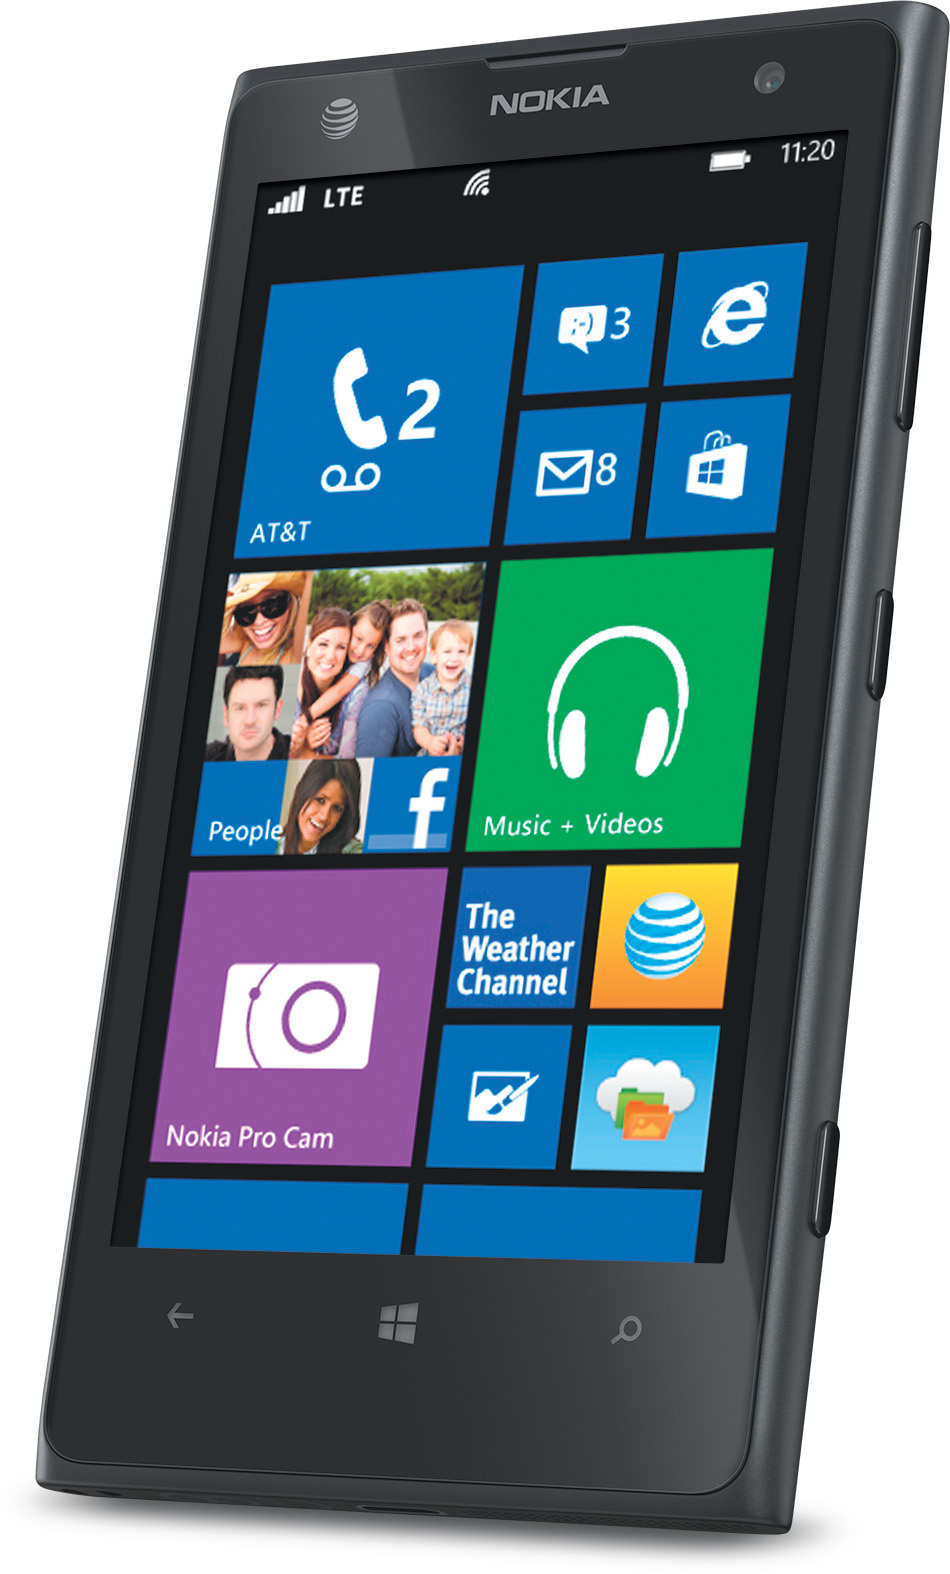 nokia lumia 1020 nfc black wifi gps 4g lte windows phone att mint condition used cell phones. Black Bedroom Furniture Sets. Home Design Ideas